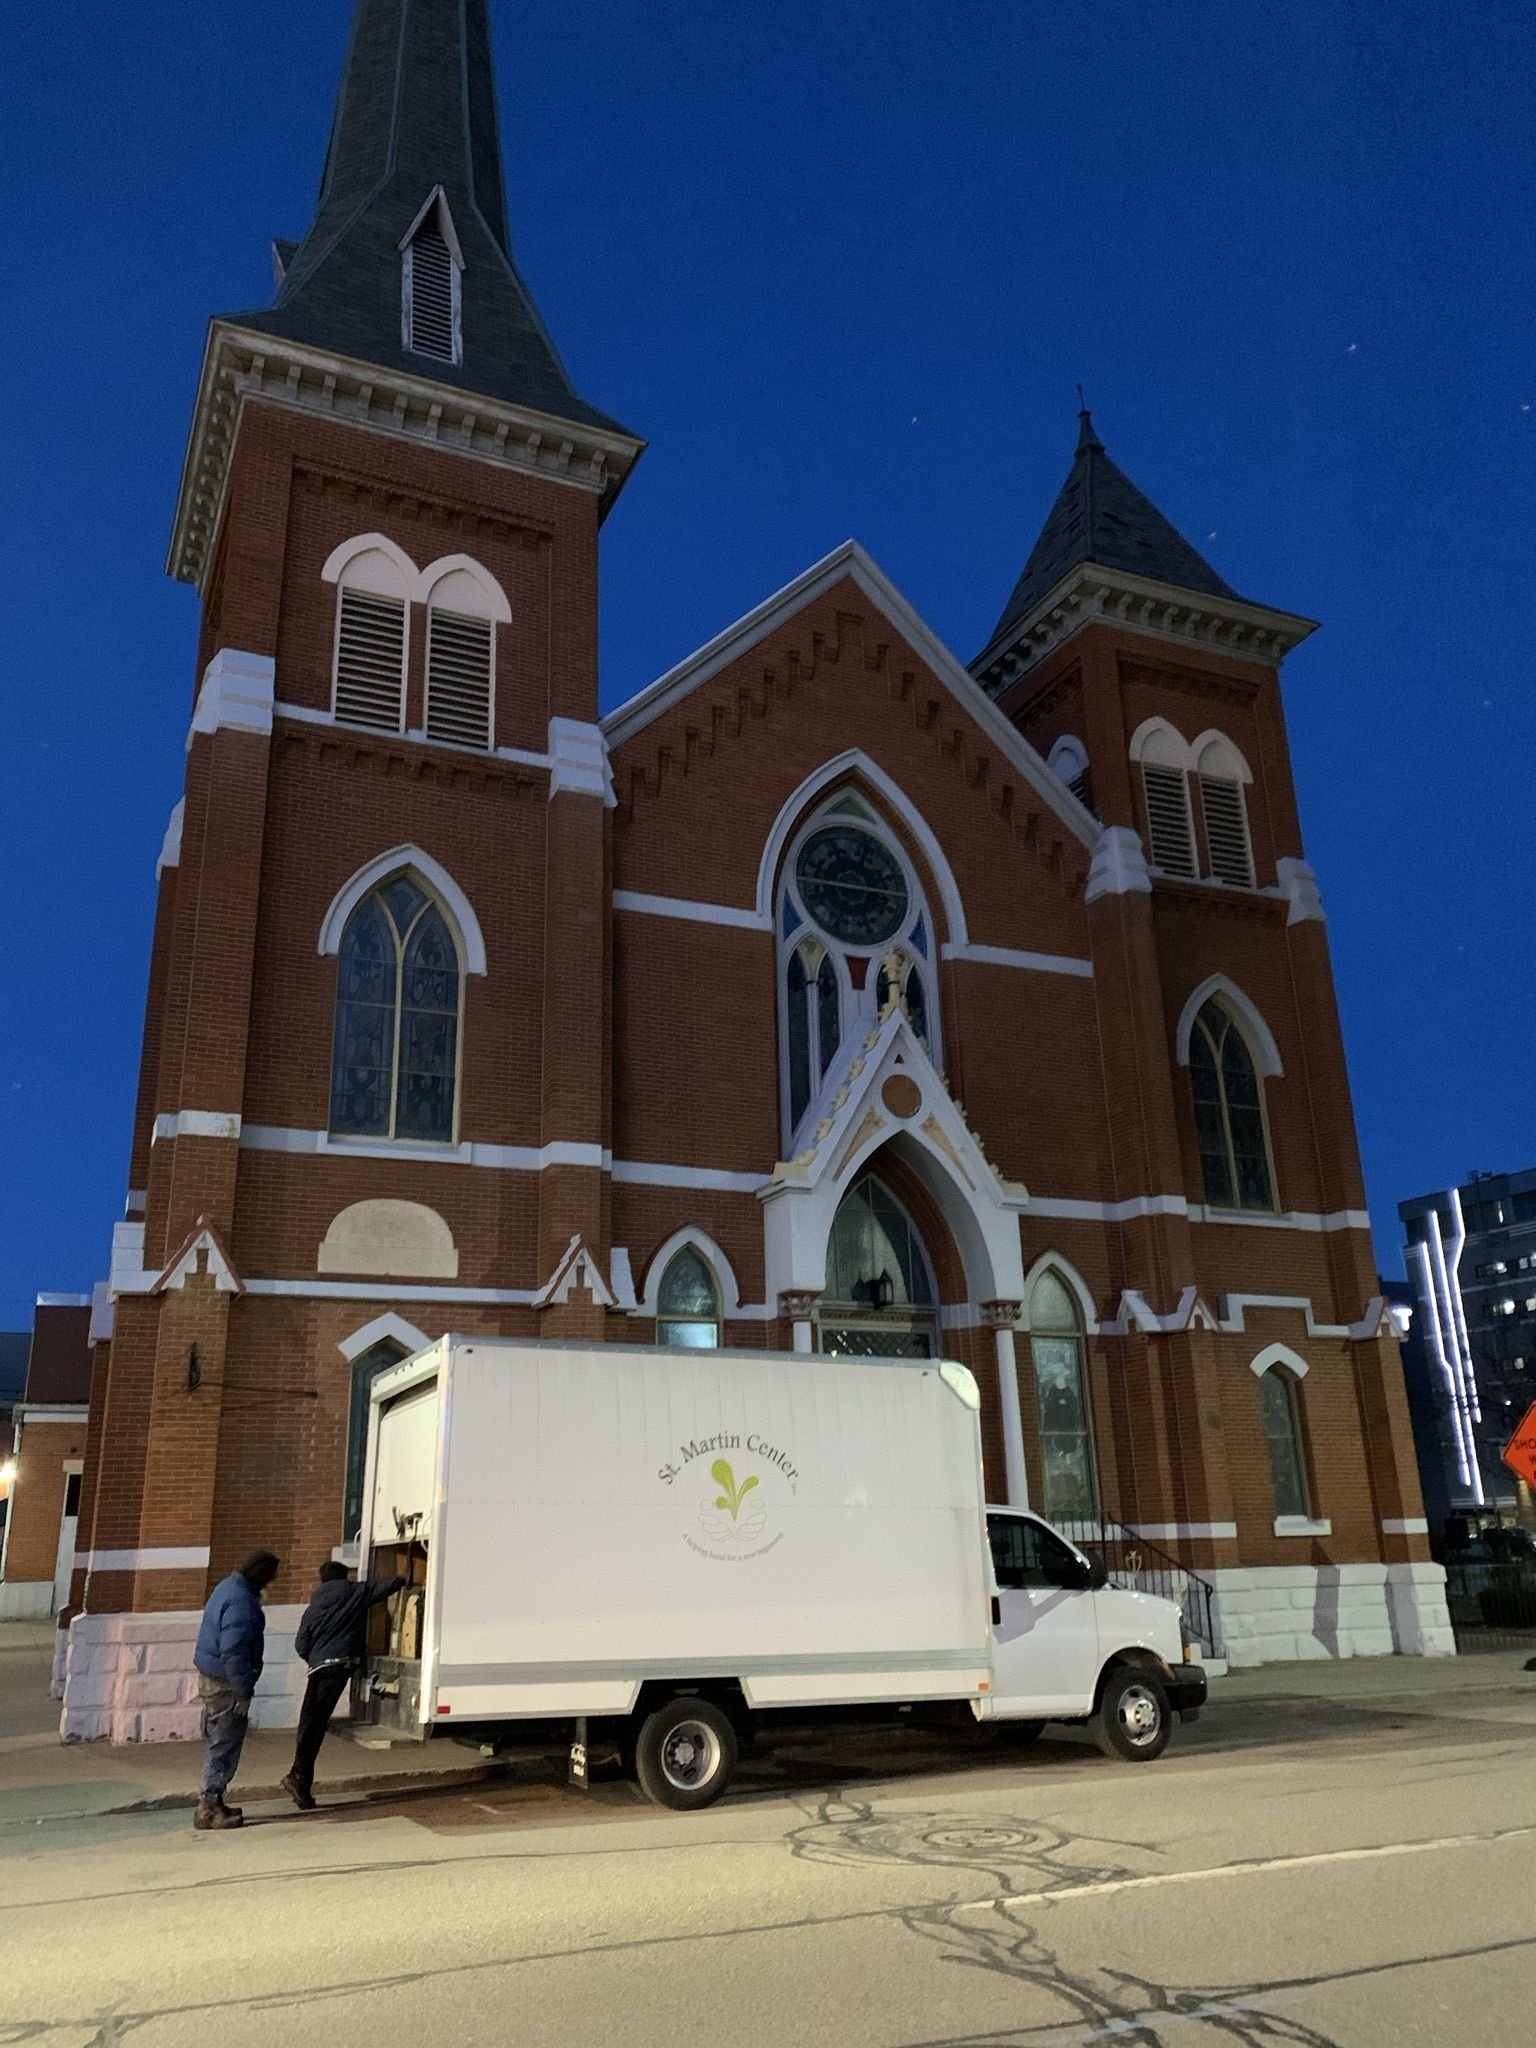 Two men stand together at the back of a large box truck parked in front of a church.